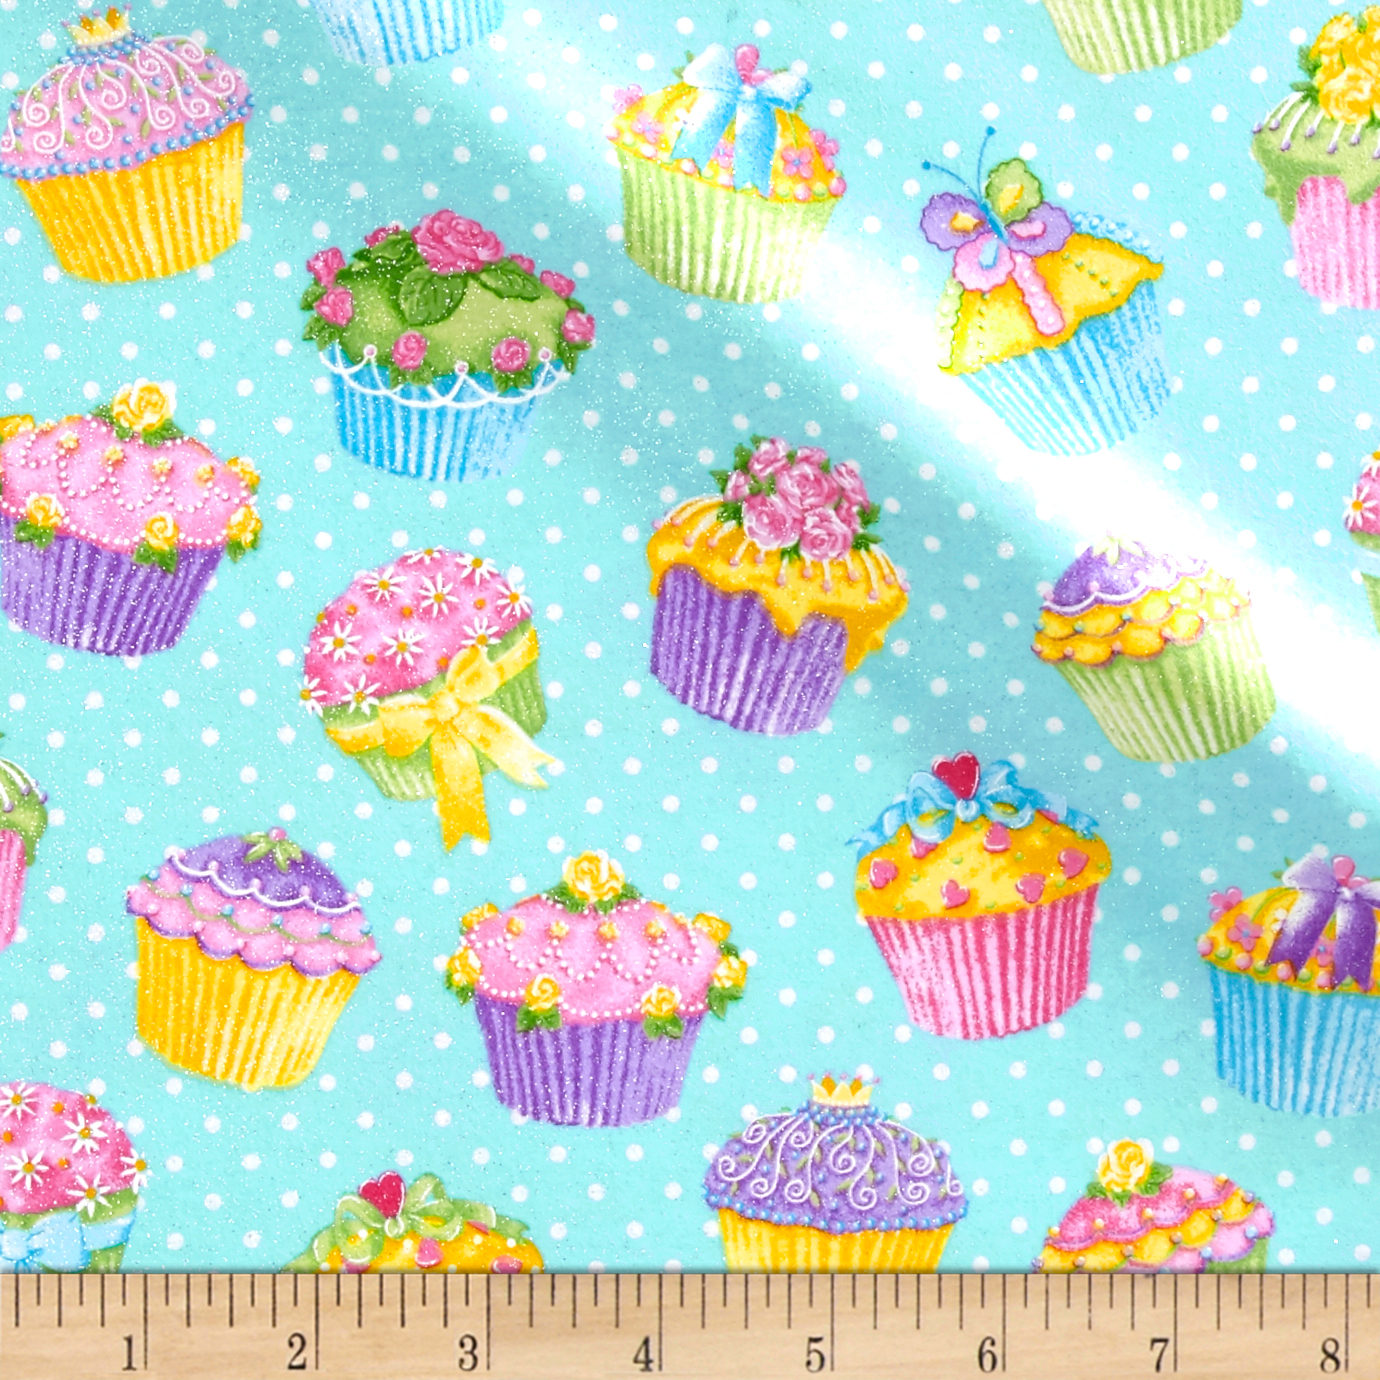 Pizzaz Flannel Glitter Cupcakes Blue Fabric by Fabric Traditions in USA